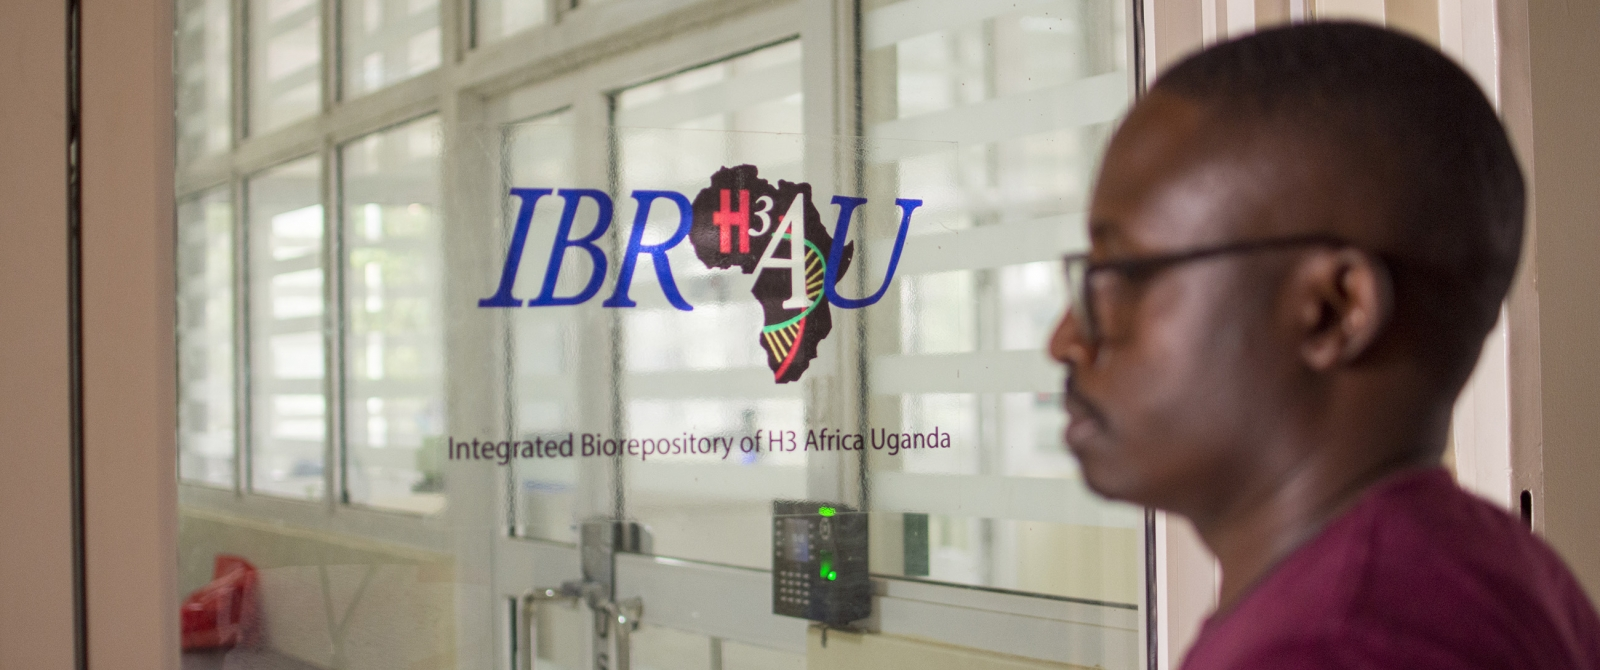 Joseph Kyebuzibwa, the NeuroGAP-Psychosis project manager at Butabika Hospital, arrives at the IBRH3AU lab